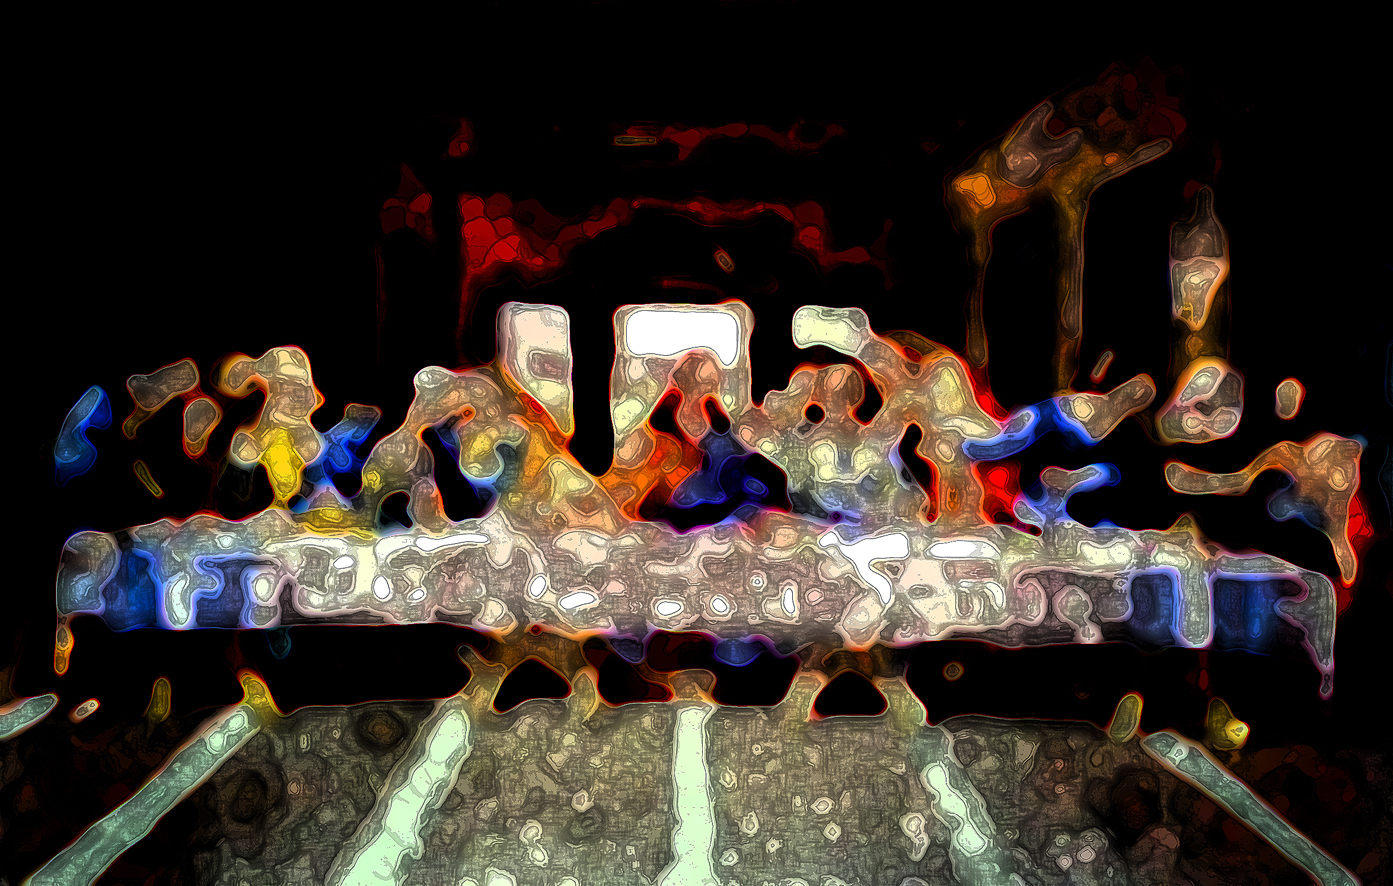 kwaaknijd, last supper xi, 2015